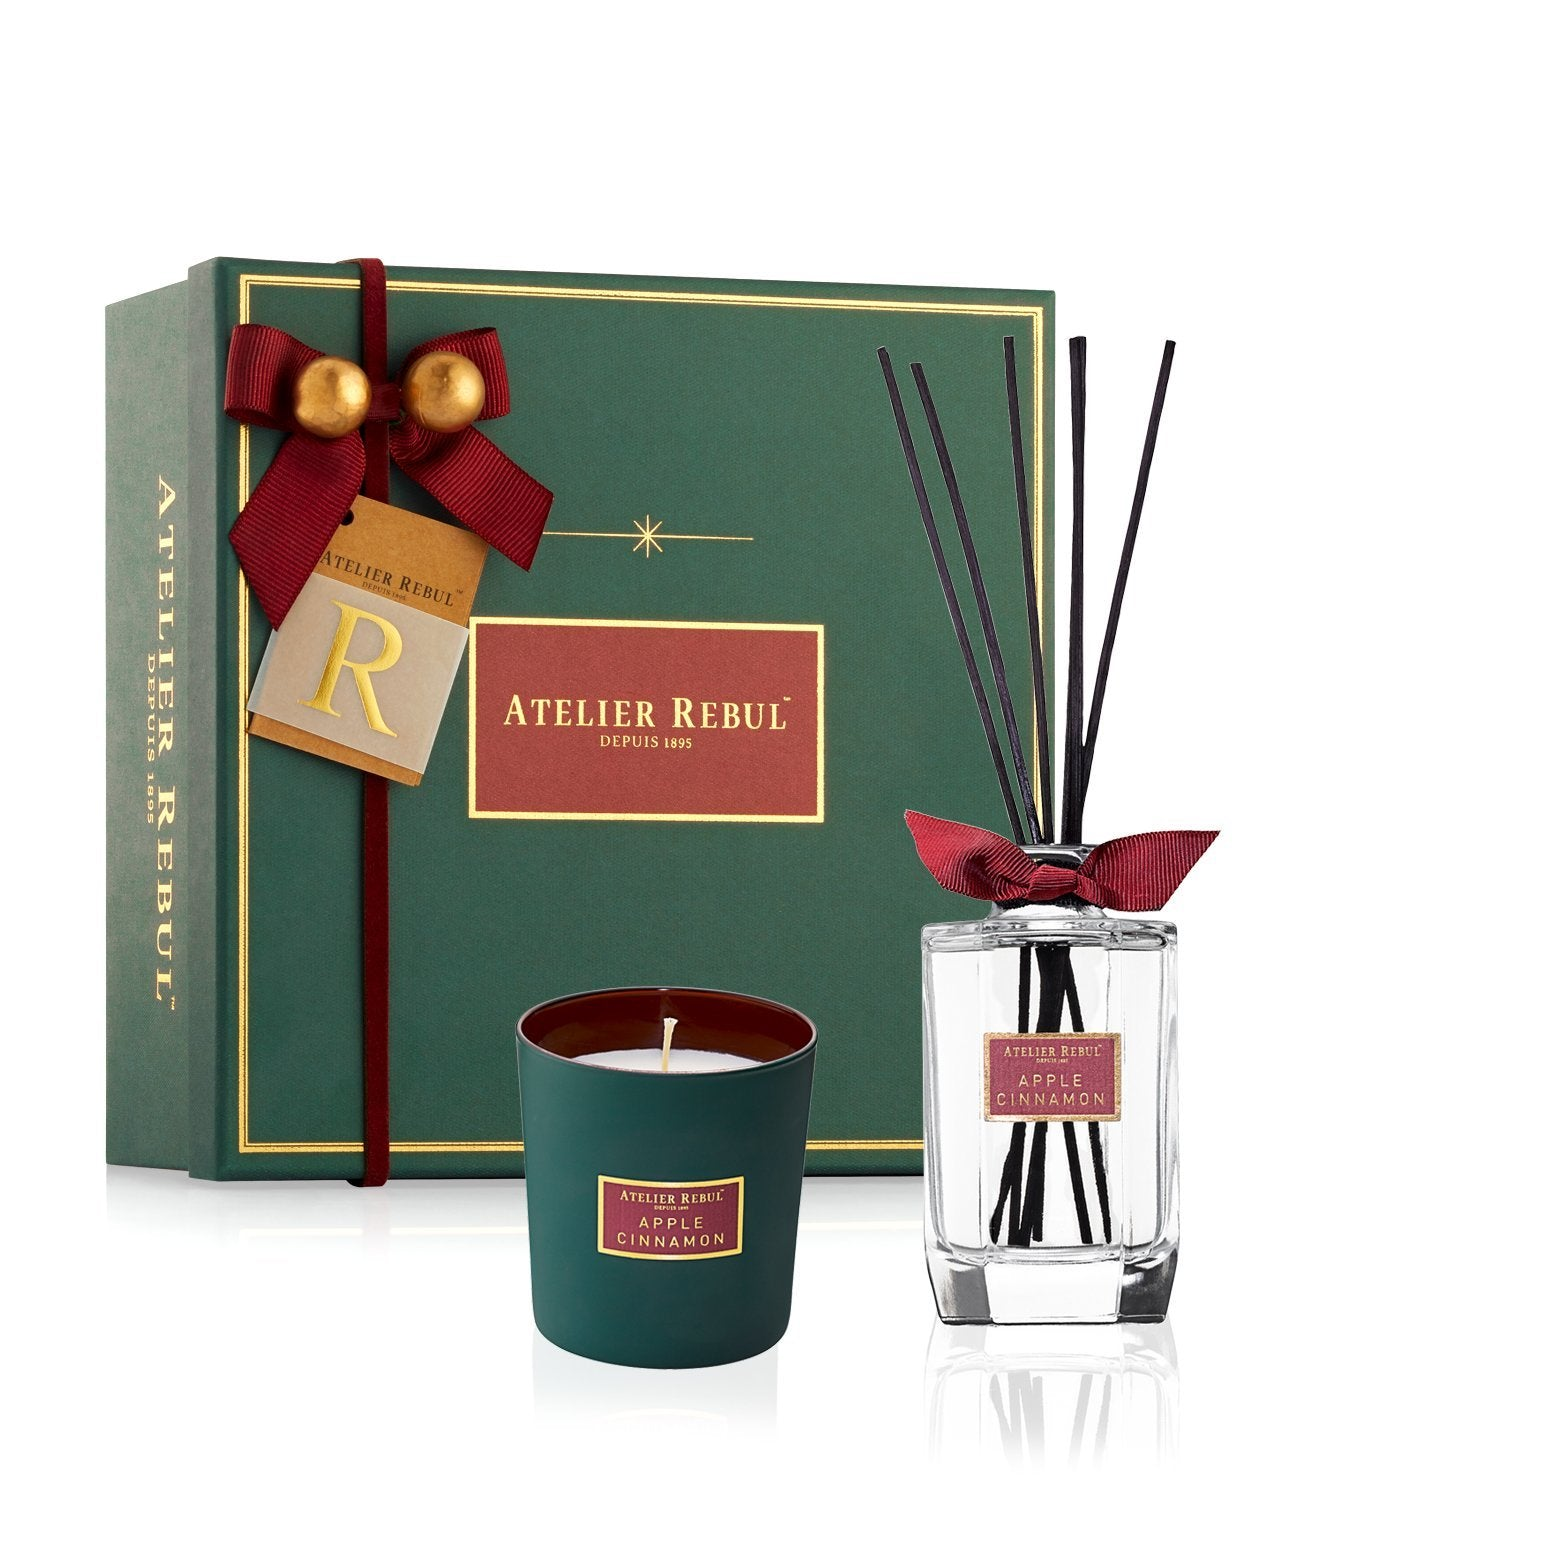 Apple Cinnamon Giftset with Fragrance Sticks & Scented Candle